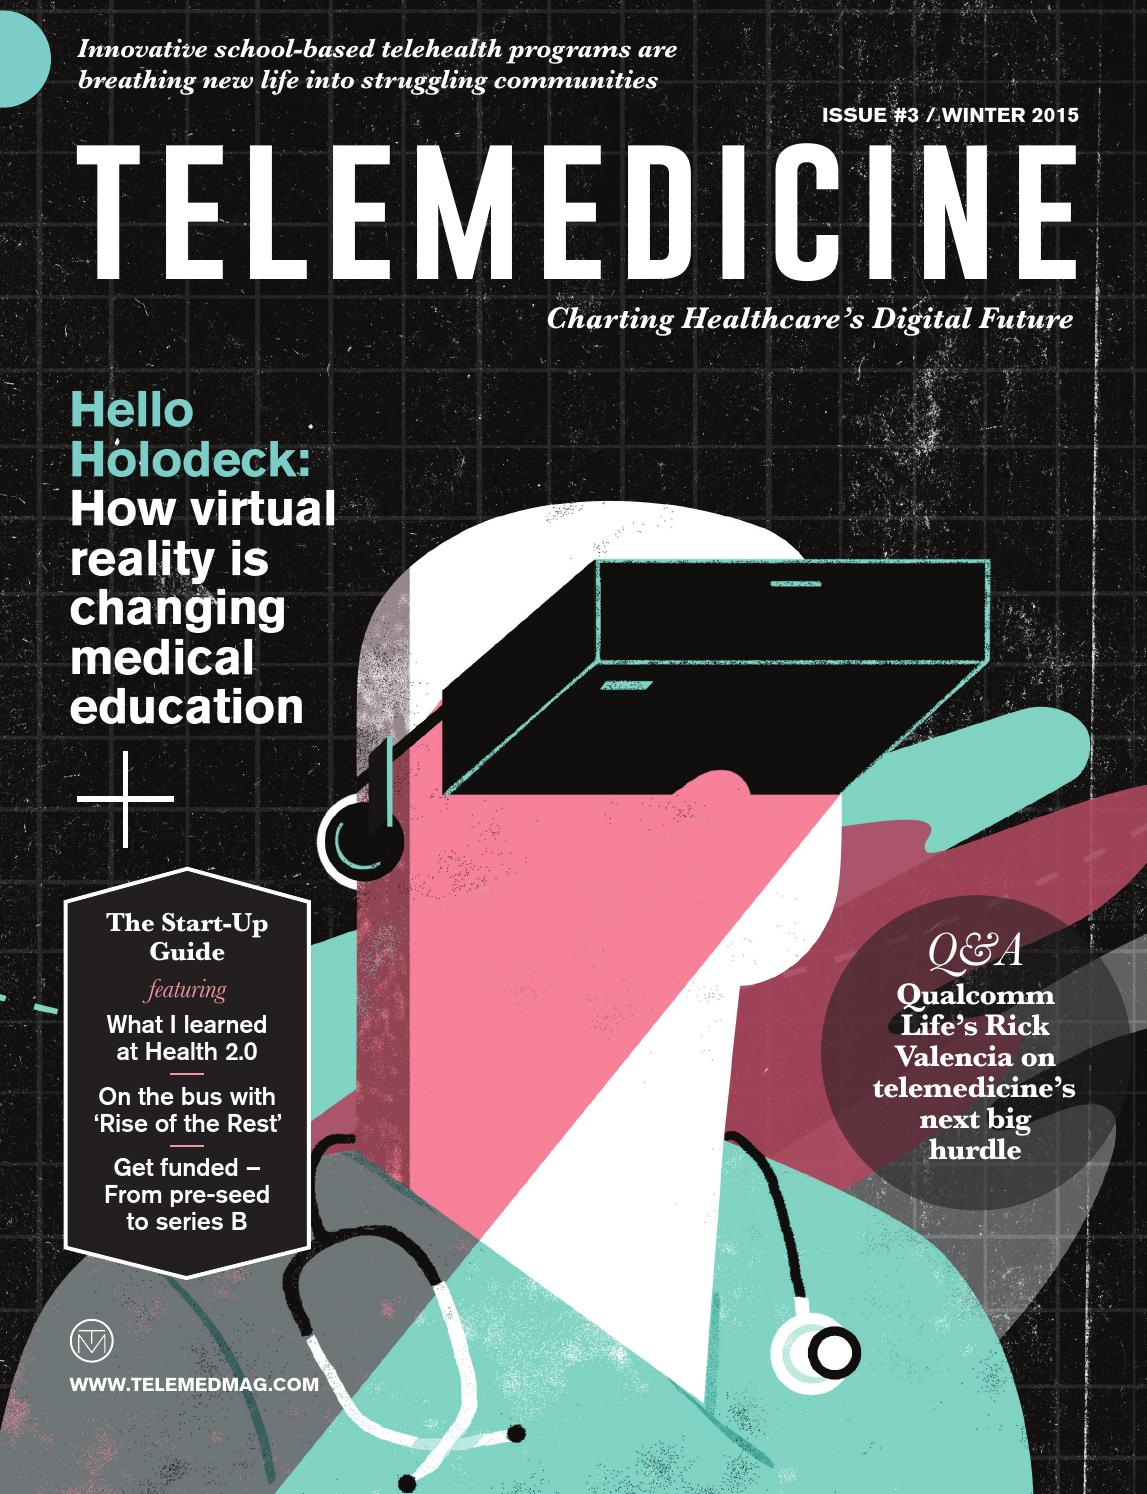 telemedicne quality of care and efficacy essay Examples of research outcomes telemedicine's impact on healthcare cost and quality april 2013 over 40 years of research has yielded a wealth of data about the cost effectiveness and efficacy.